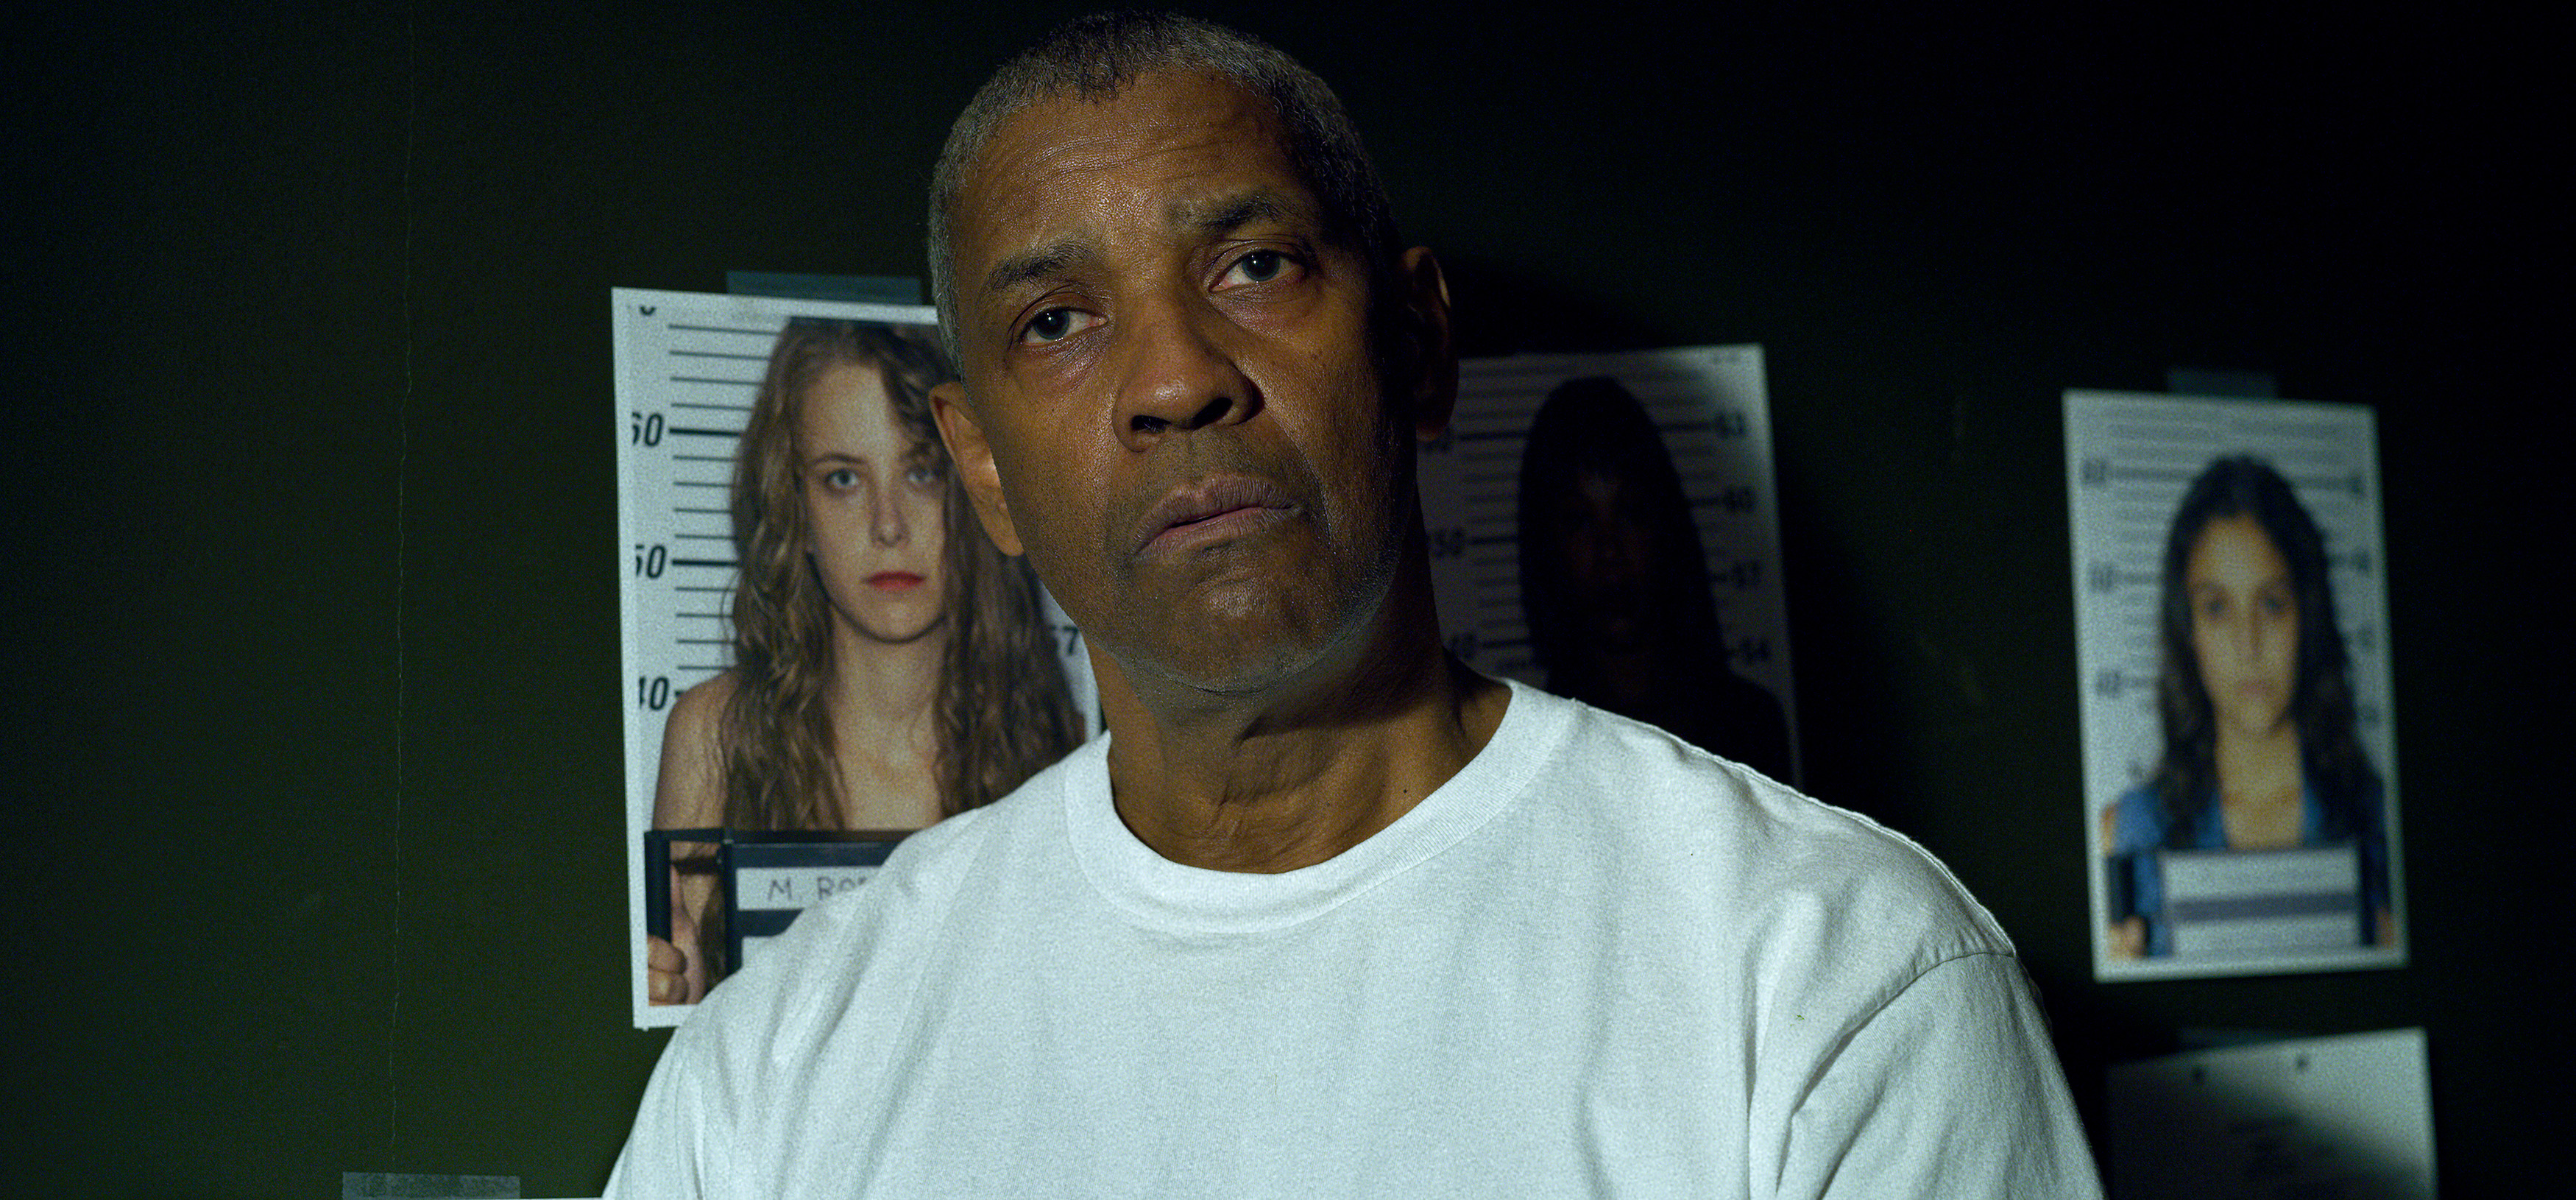 Denzel Washington wears a white t-shirt and stands in front of a green wall with pictures of murdered women in The Little Things